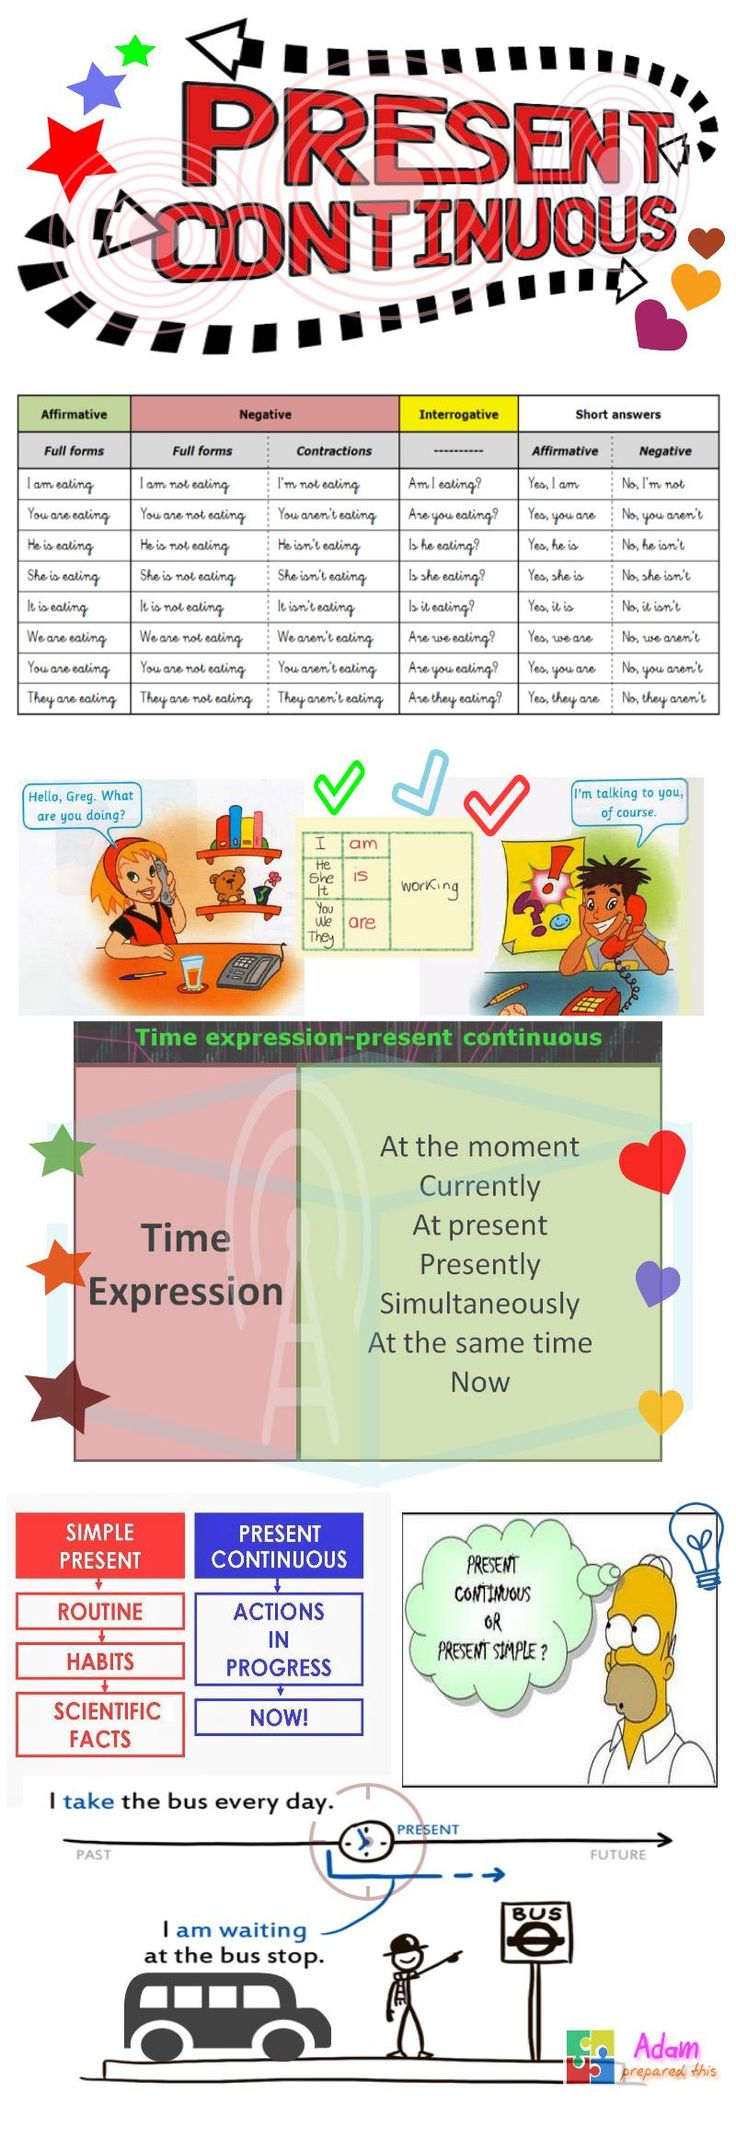 Infographic: Present continuous tense | Teach them English